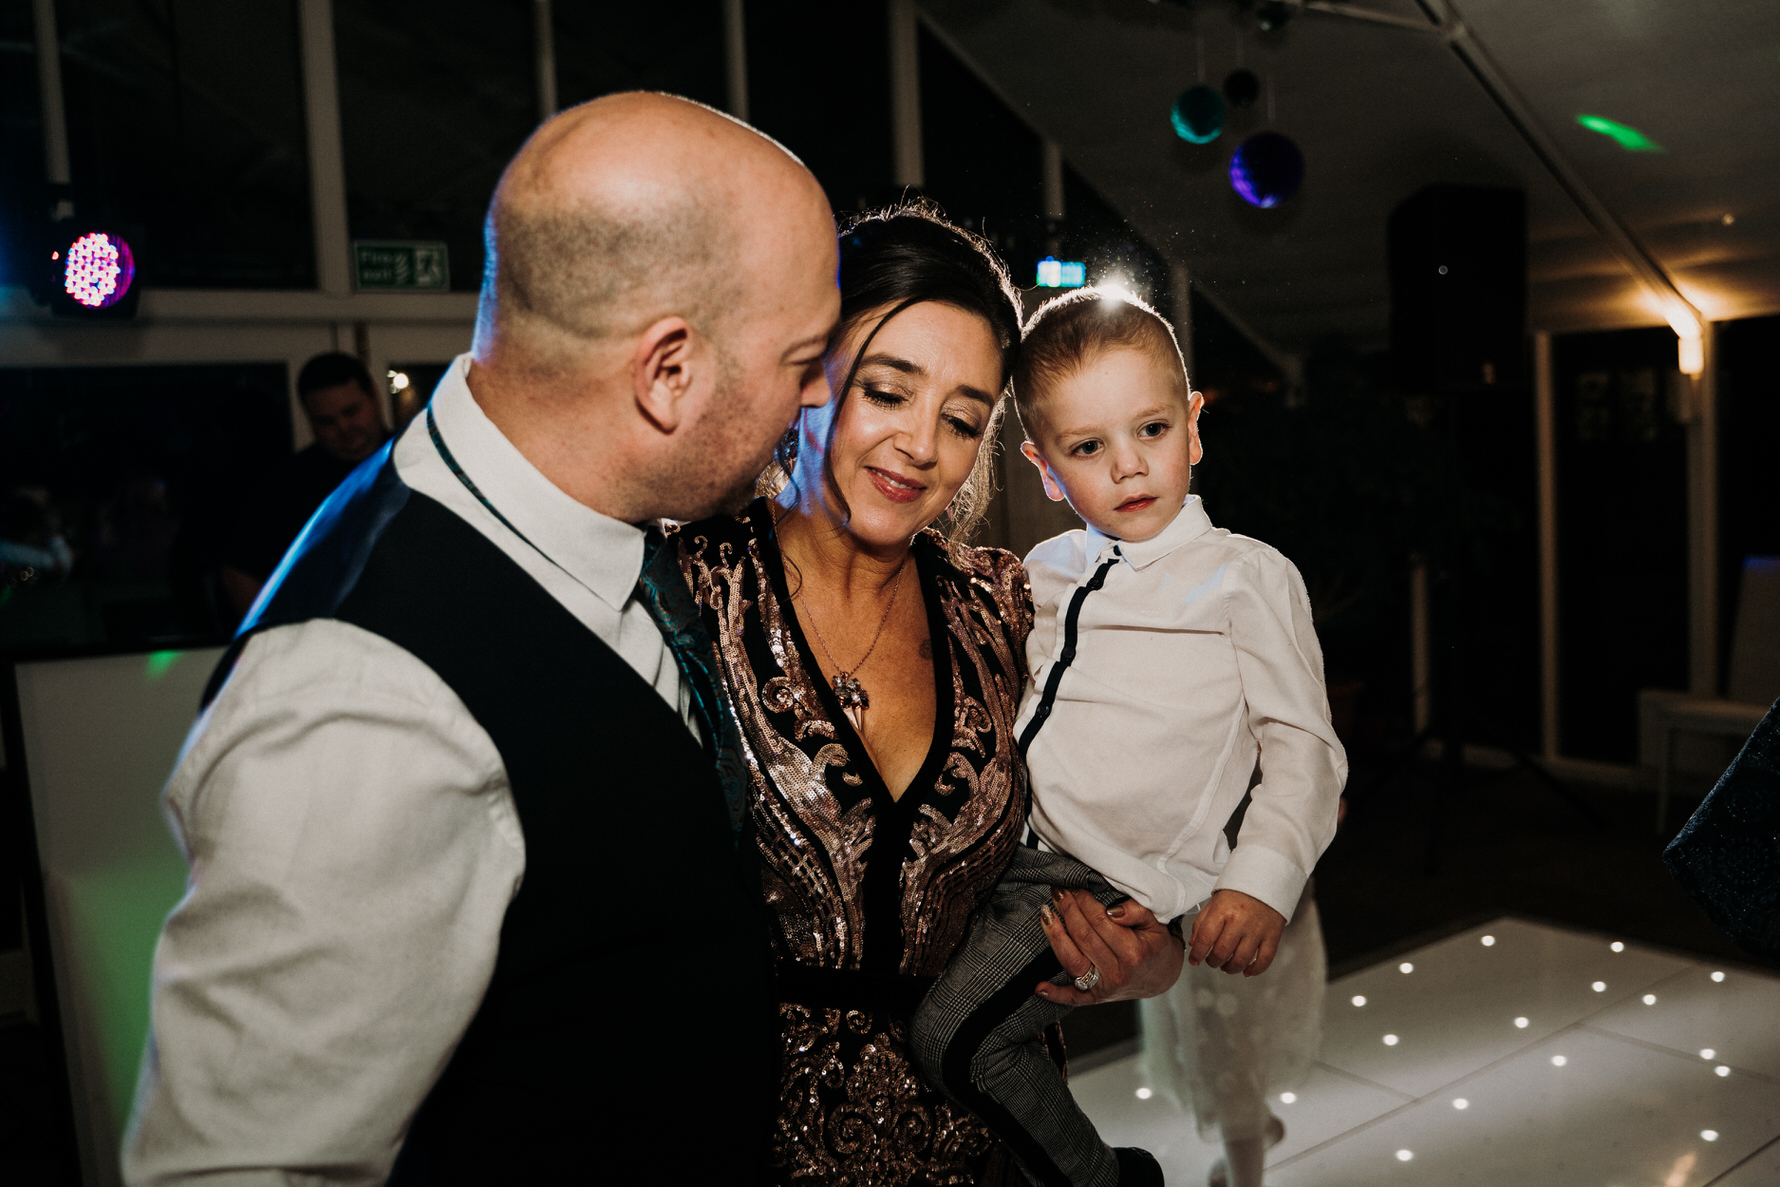 cheshire-documentary-wedding-photography-abbeywood-estate-wedding